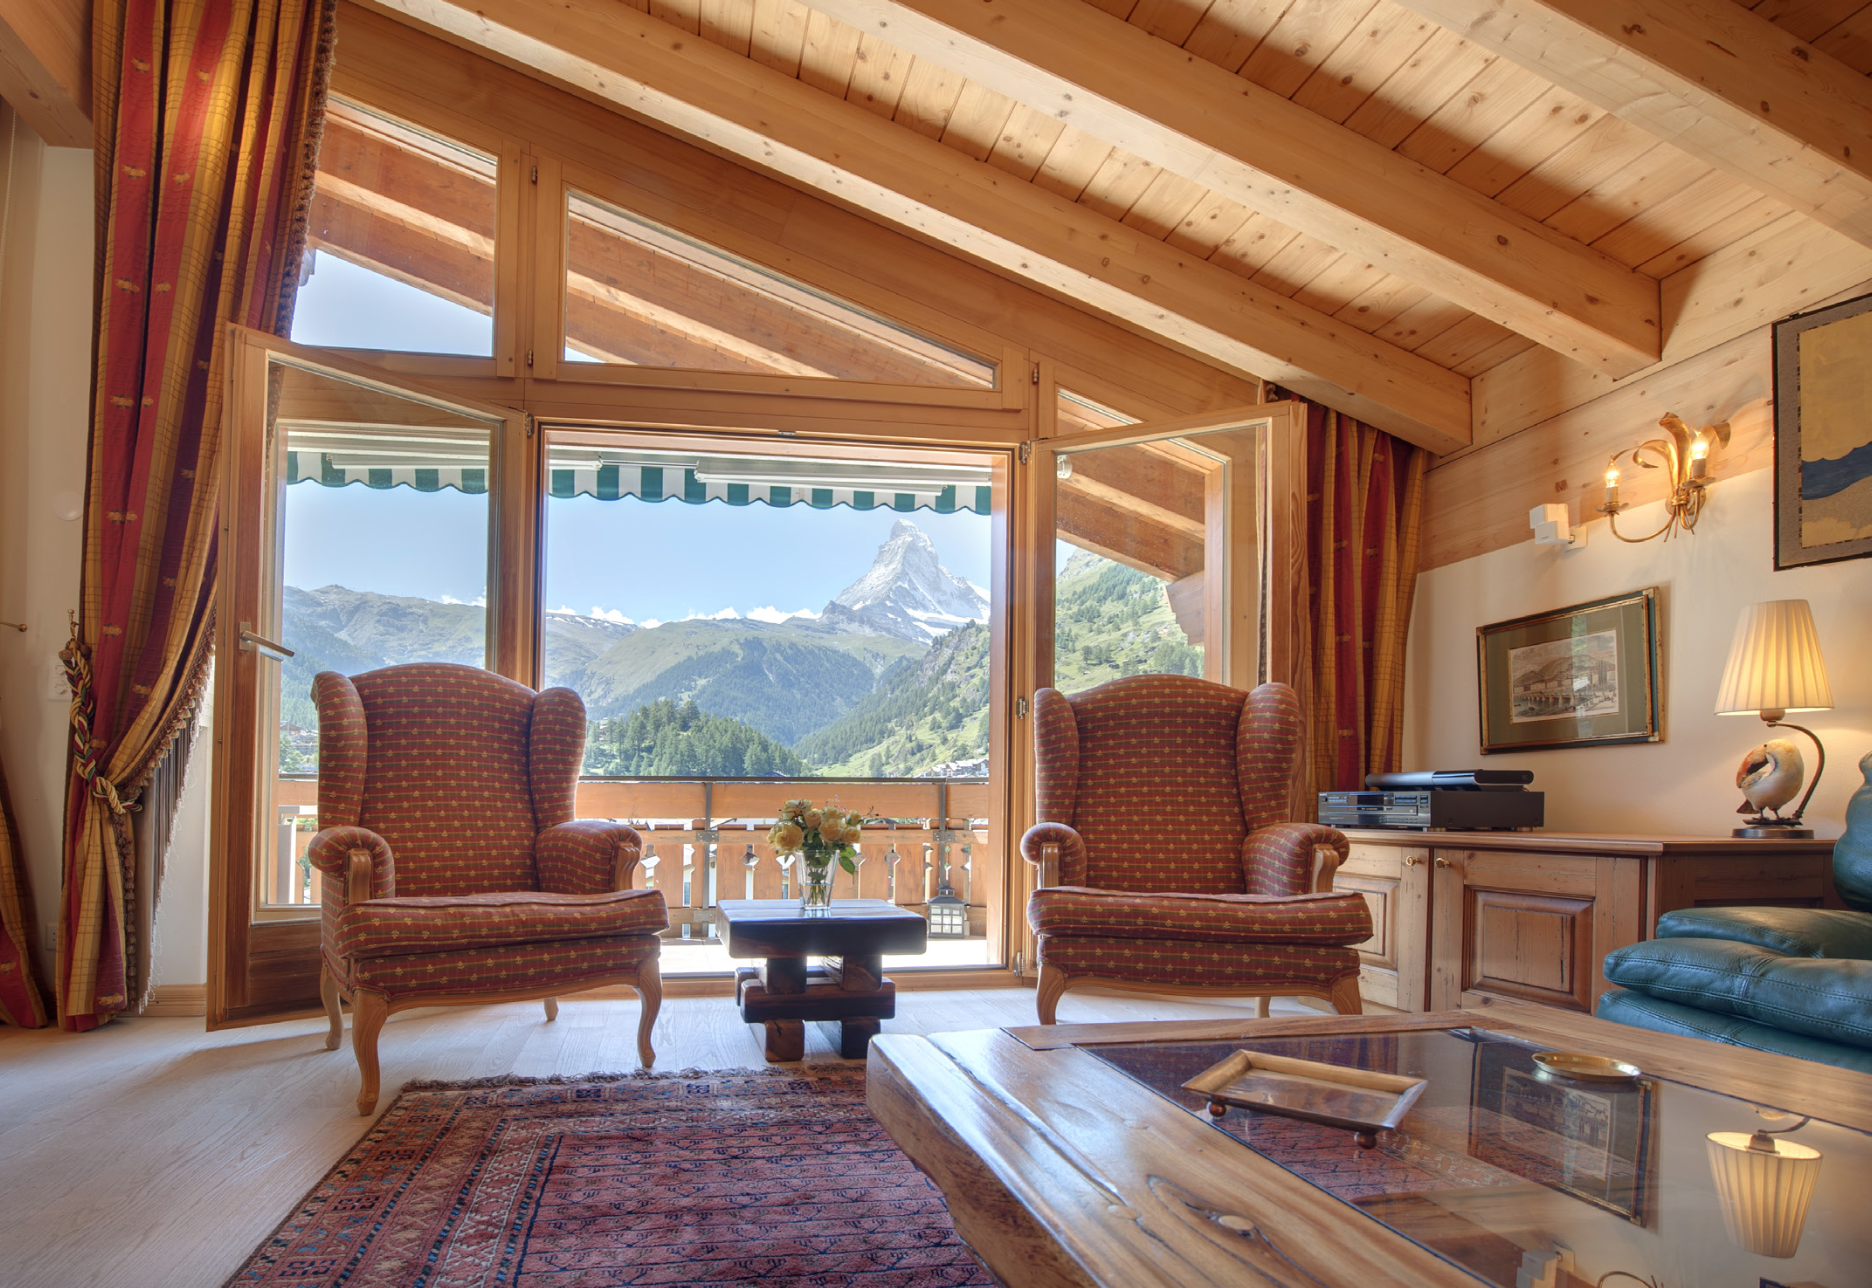 Salon chalet montagne: decoration salon style chalet. gite chalet ...